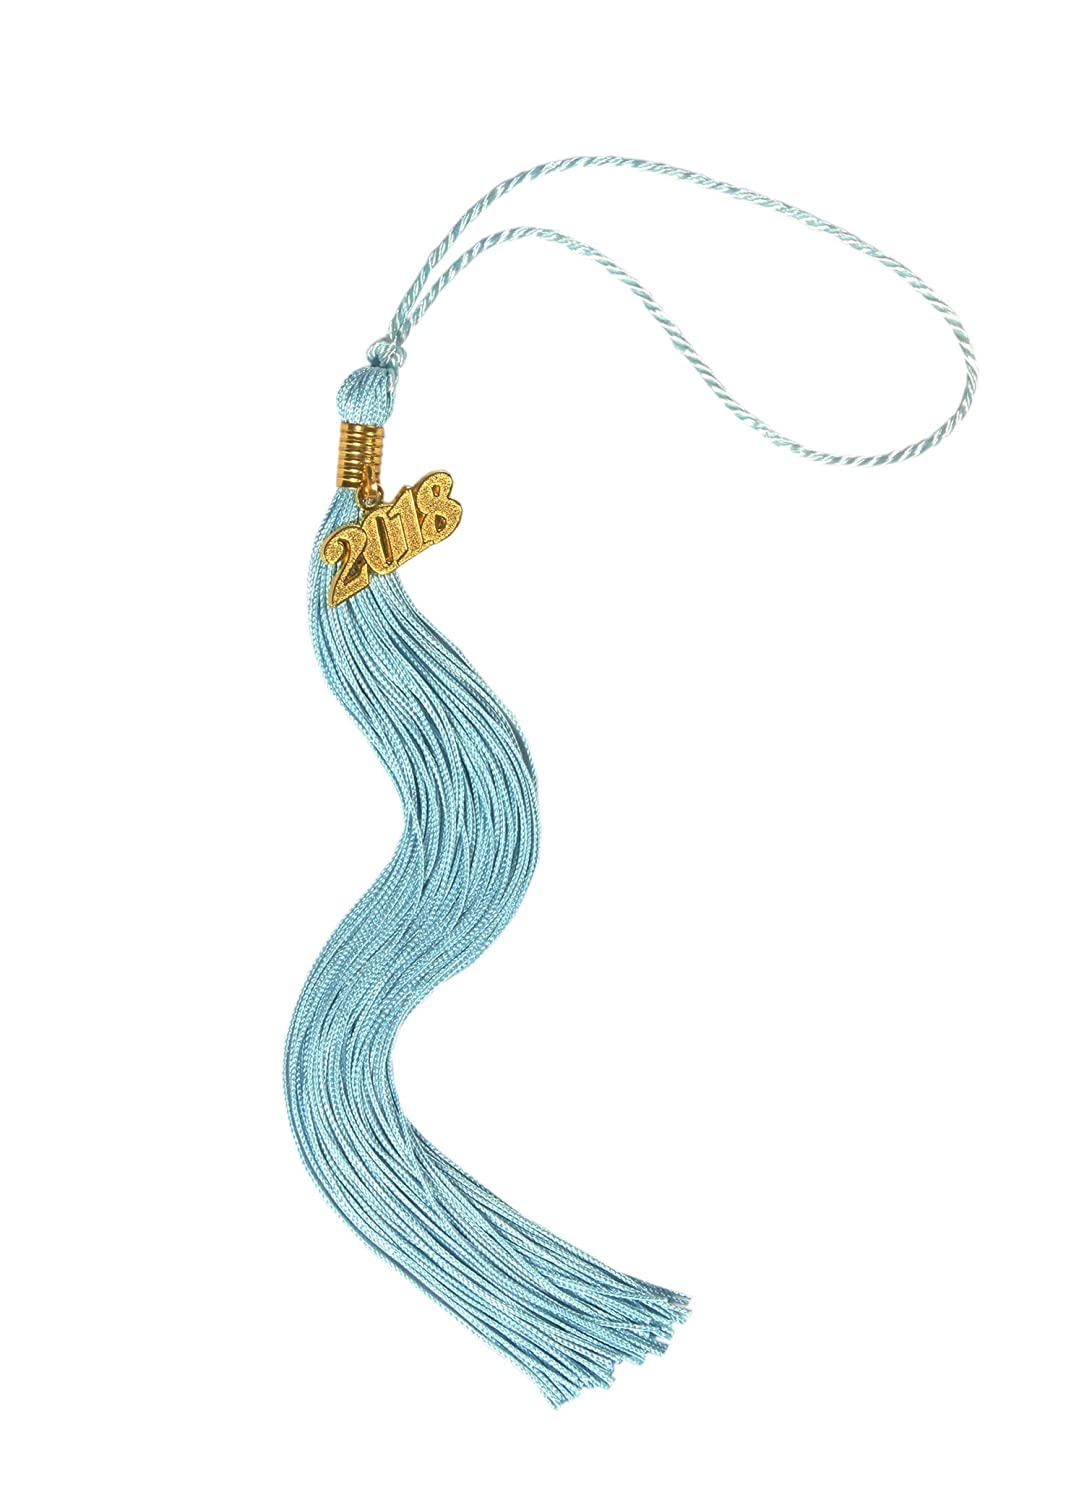 GradPlaza Graduation Tassel with 2018 Year Charm